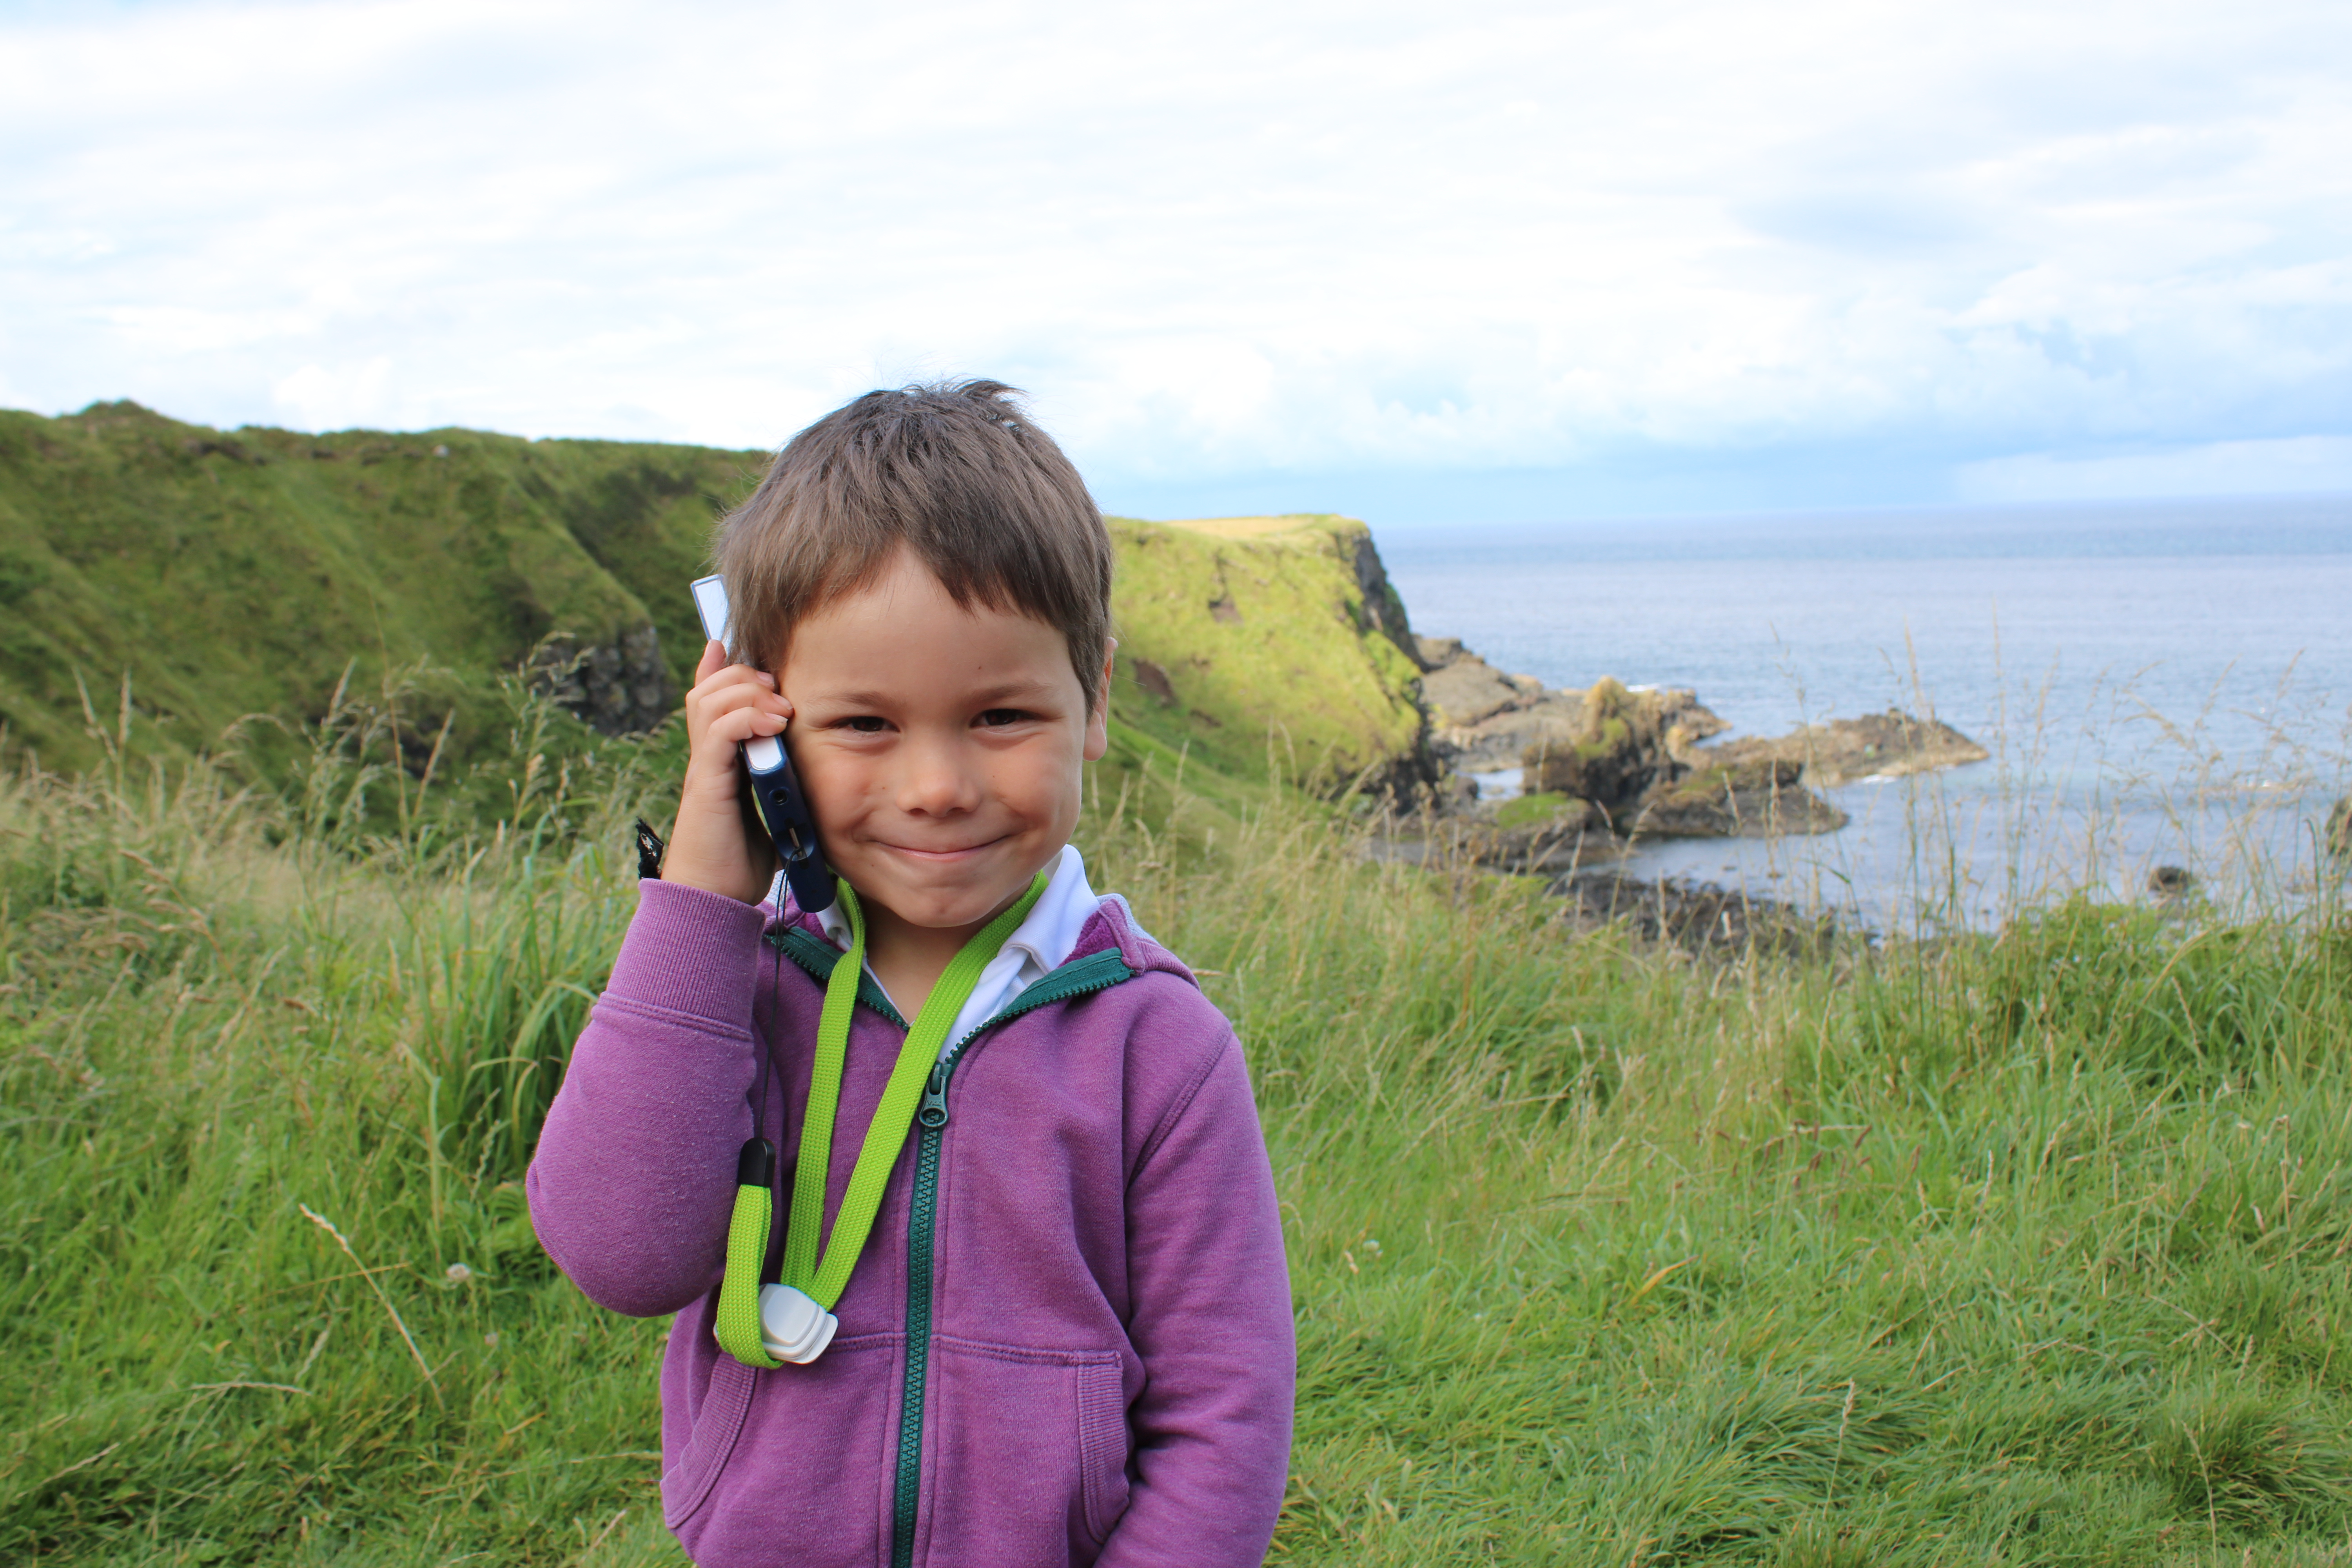 Cody listening to his audio tour at the Giants Causeway in Ireland